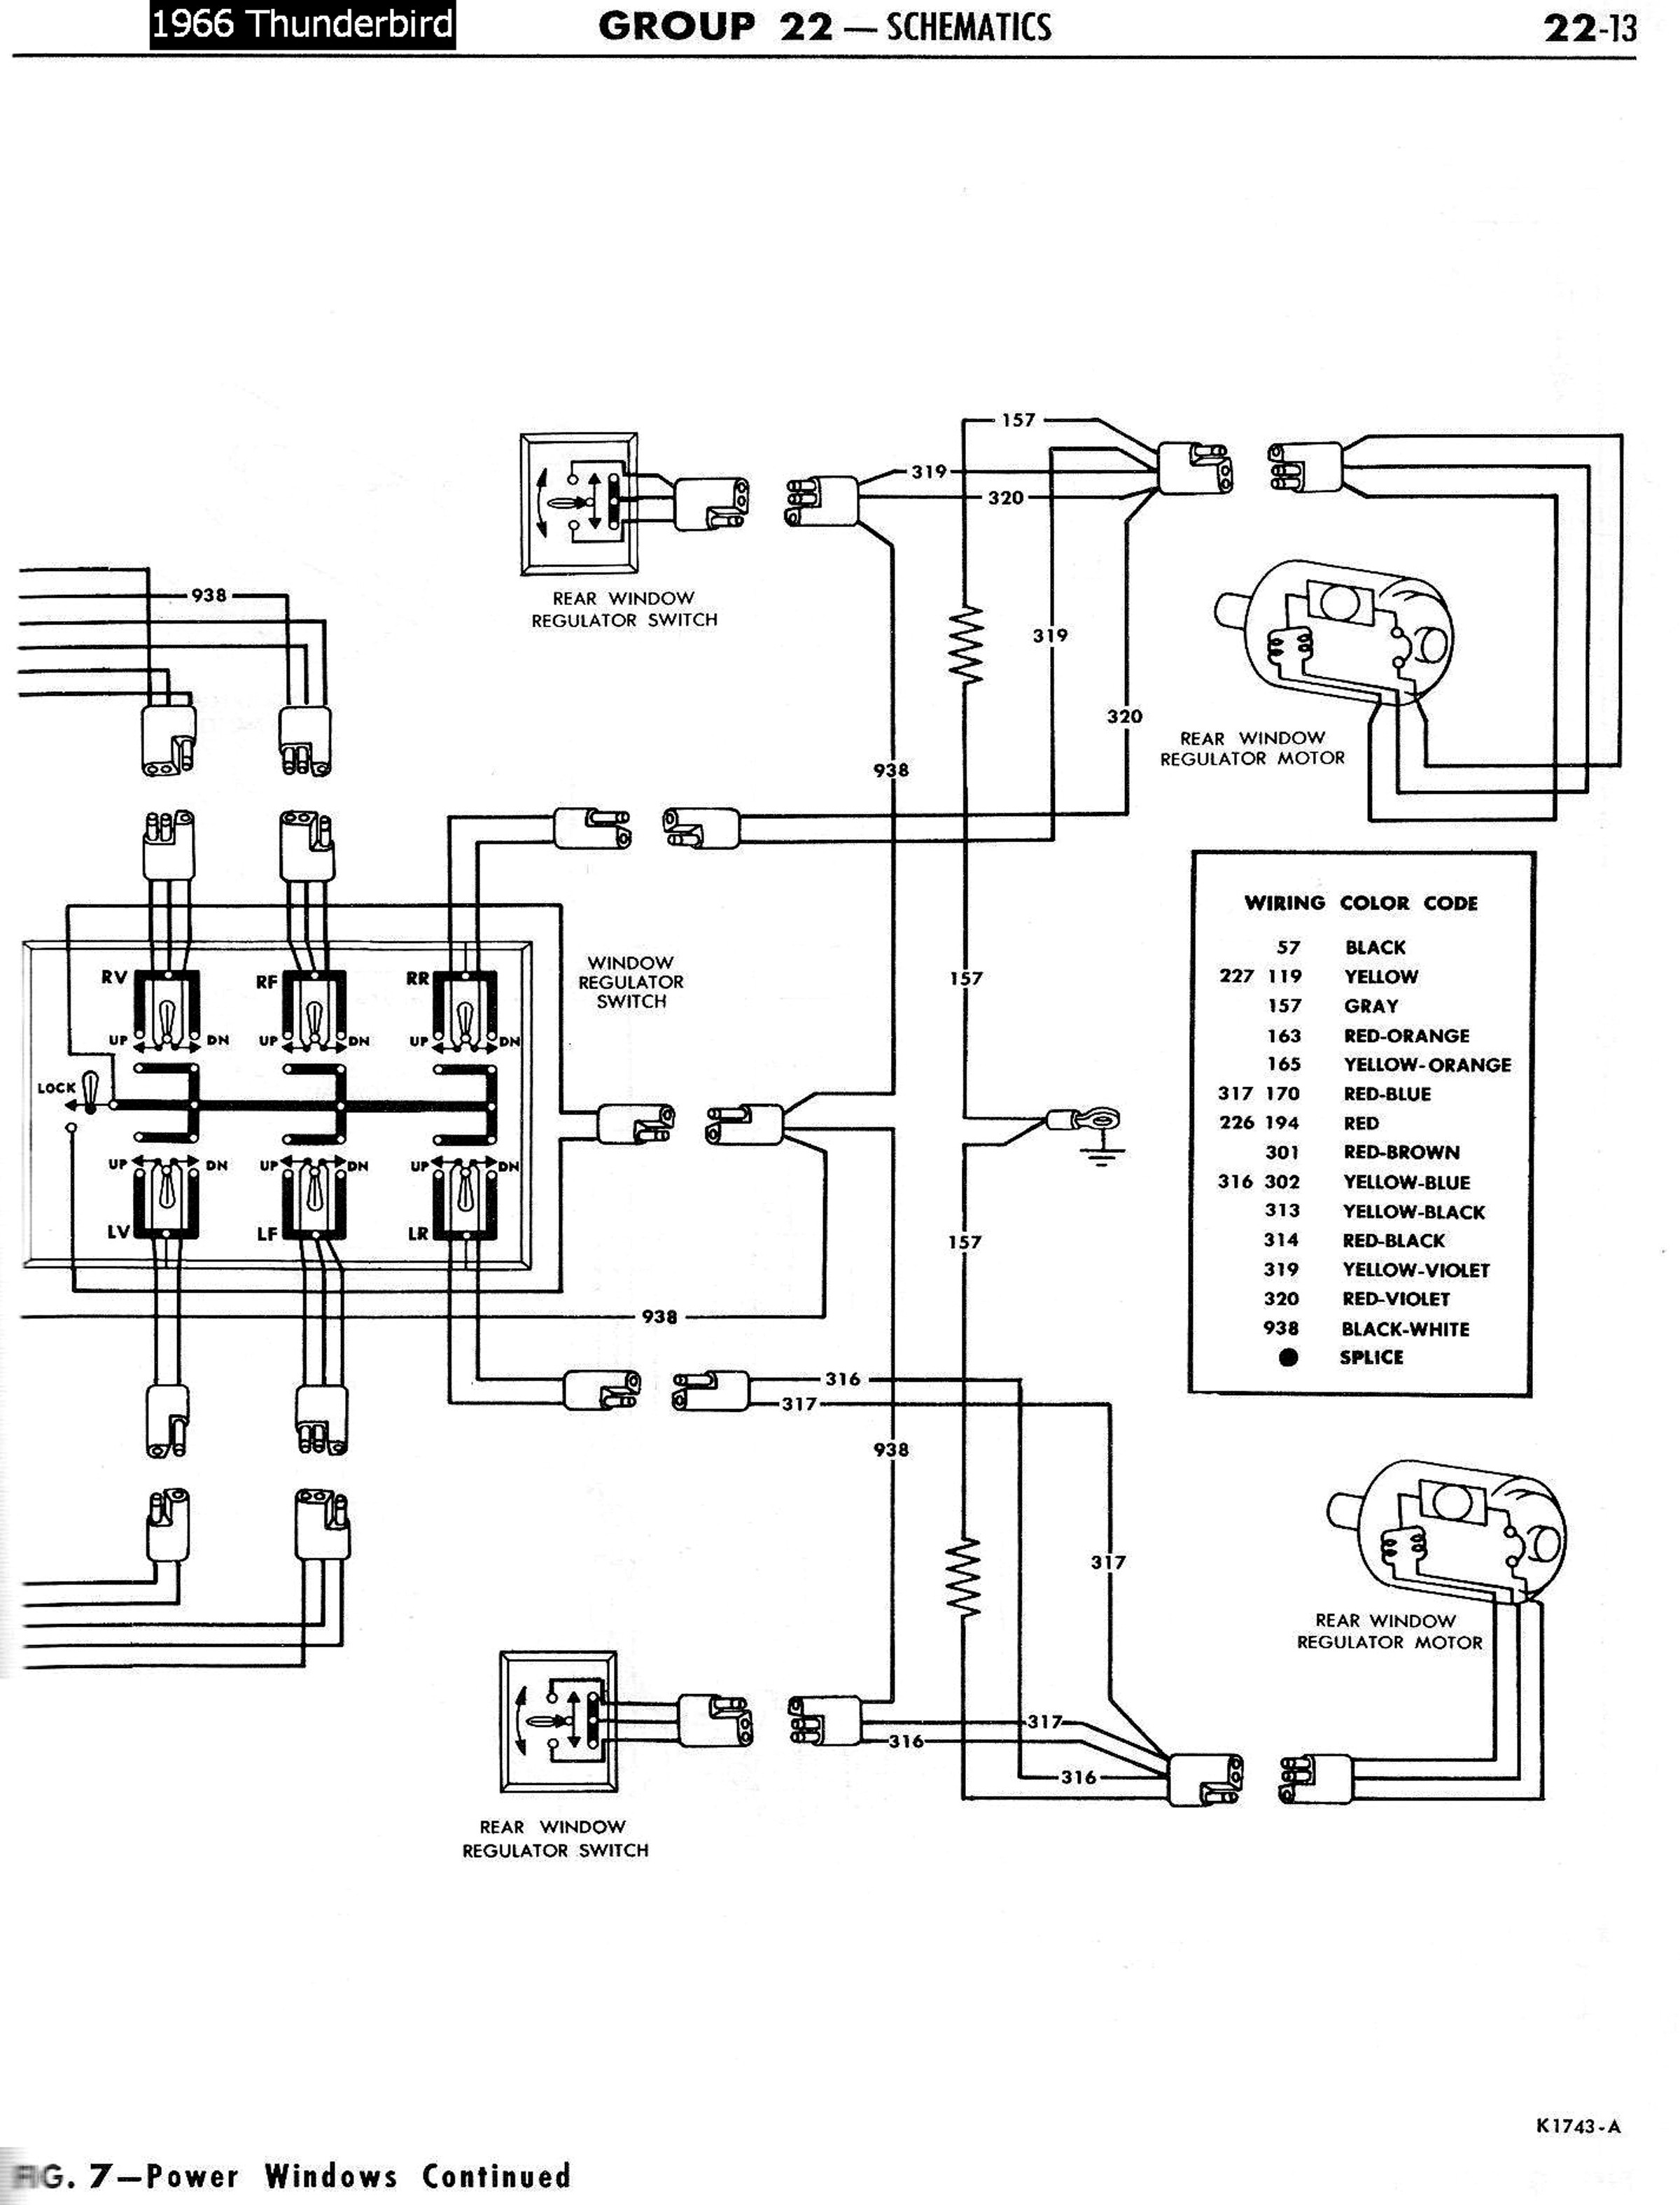 power window motor wiring diagram for audi a6